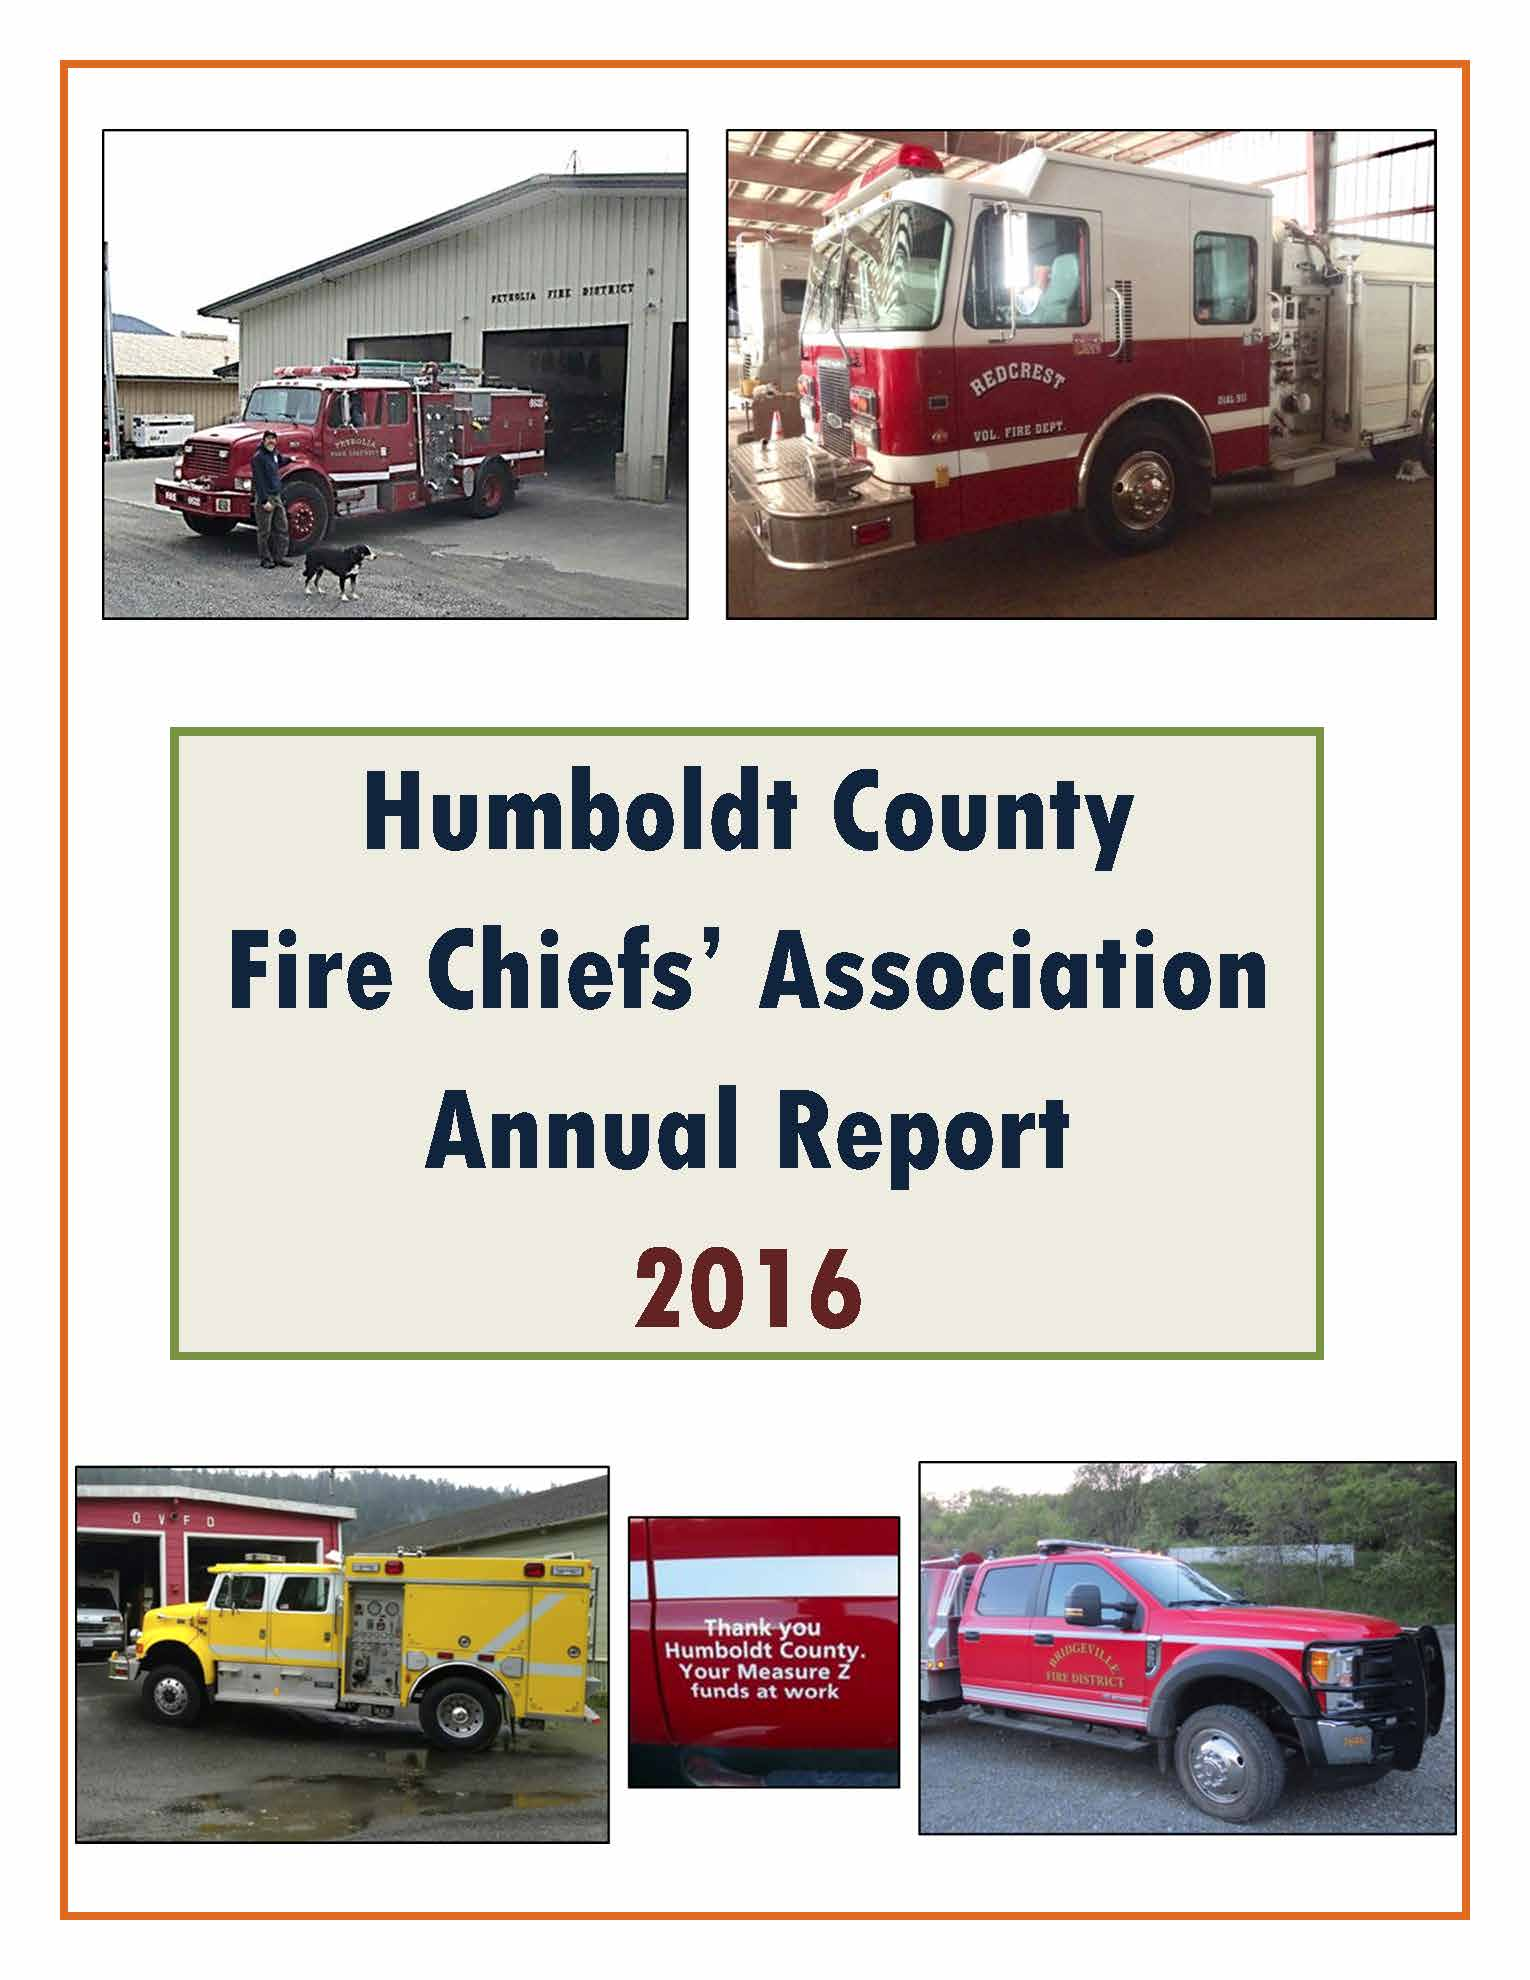 Image Link 2016 Fire Chiefs' Association Annual Report